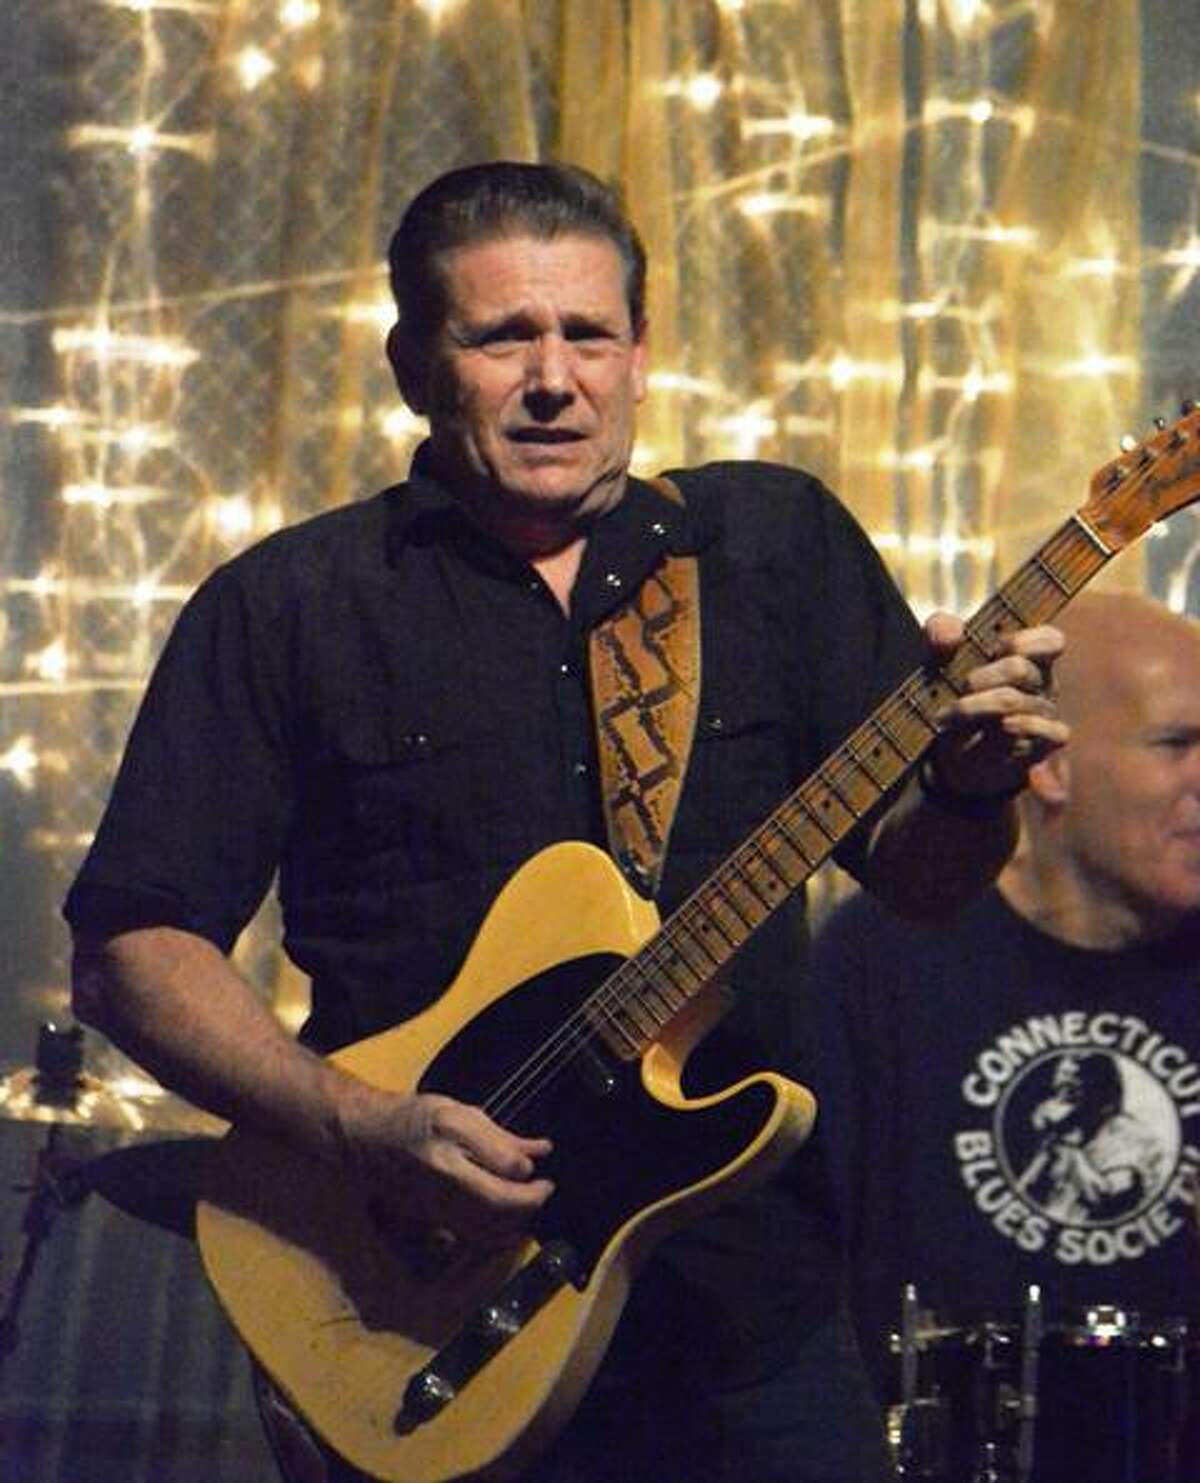 Neal & The Vipers are playing the Black-Eyed & Blues Fest on Saturday.